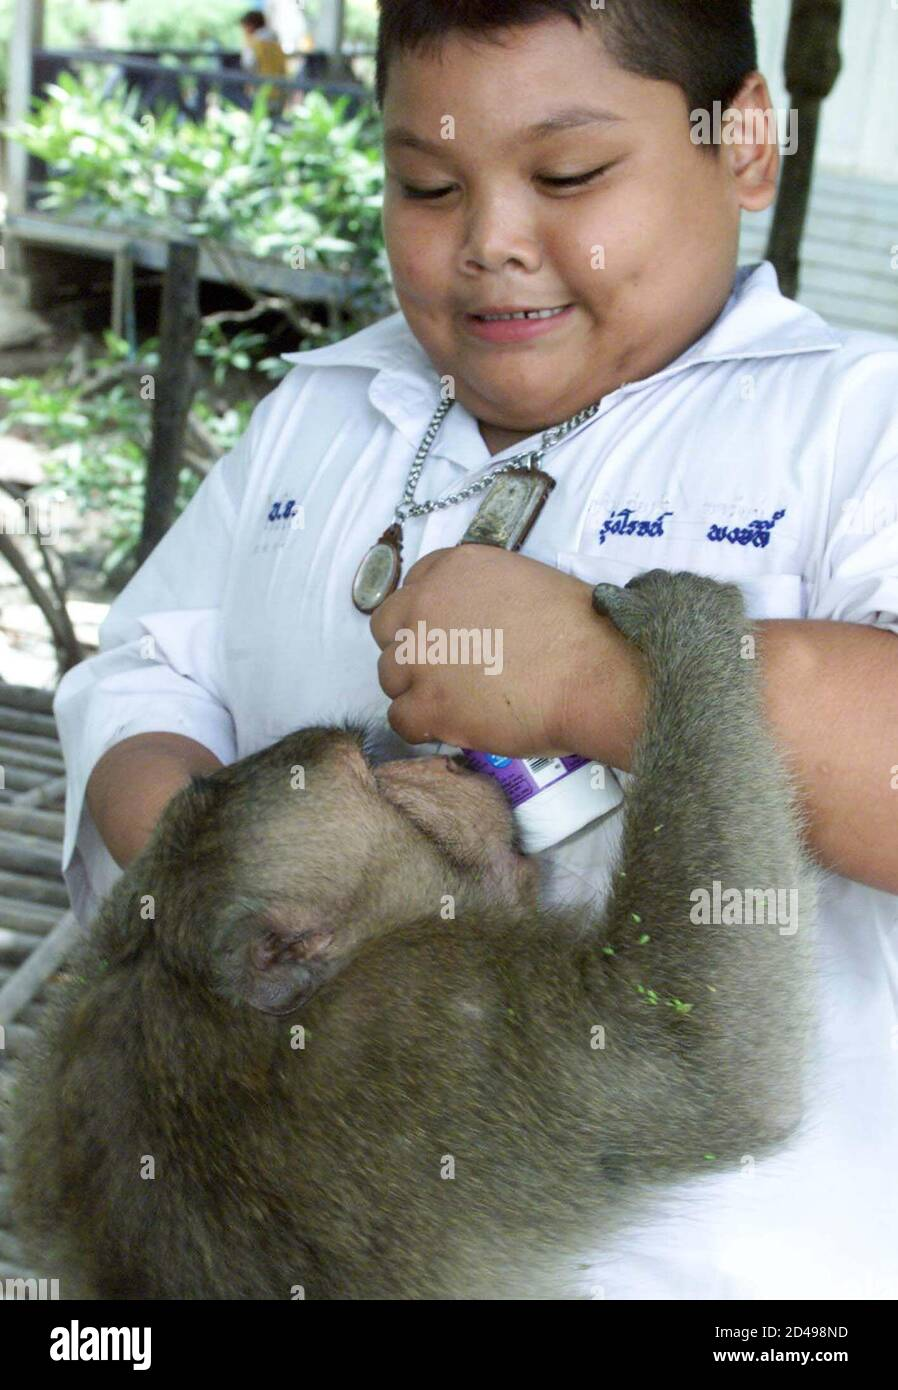 A stray monkey tries to steal a bottle of yoghurt from a student during lunchtime at a school in Samul Songkram province, 80 km southwest of Bangkok May 29, 2001. About 100 pupils at Ban Chu Chee Primary School have been robbed of food by over 150 monkeys, whose mangrove habitat has constantly been encroached by human beings for over a year.  NWA/DL Stock Photo